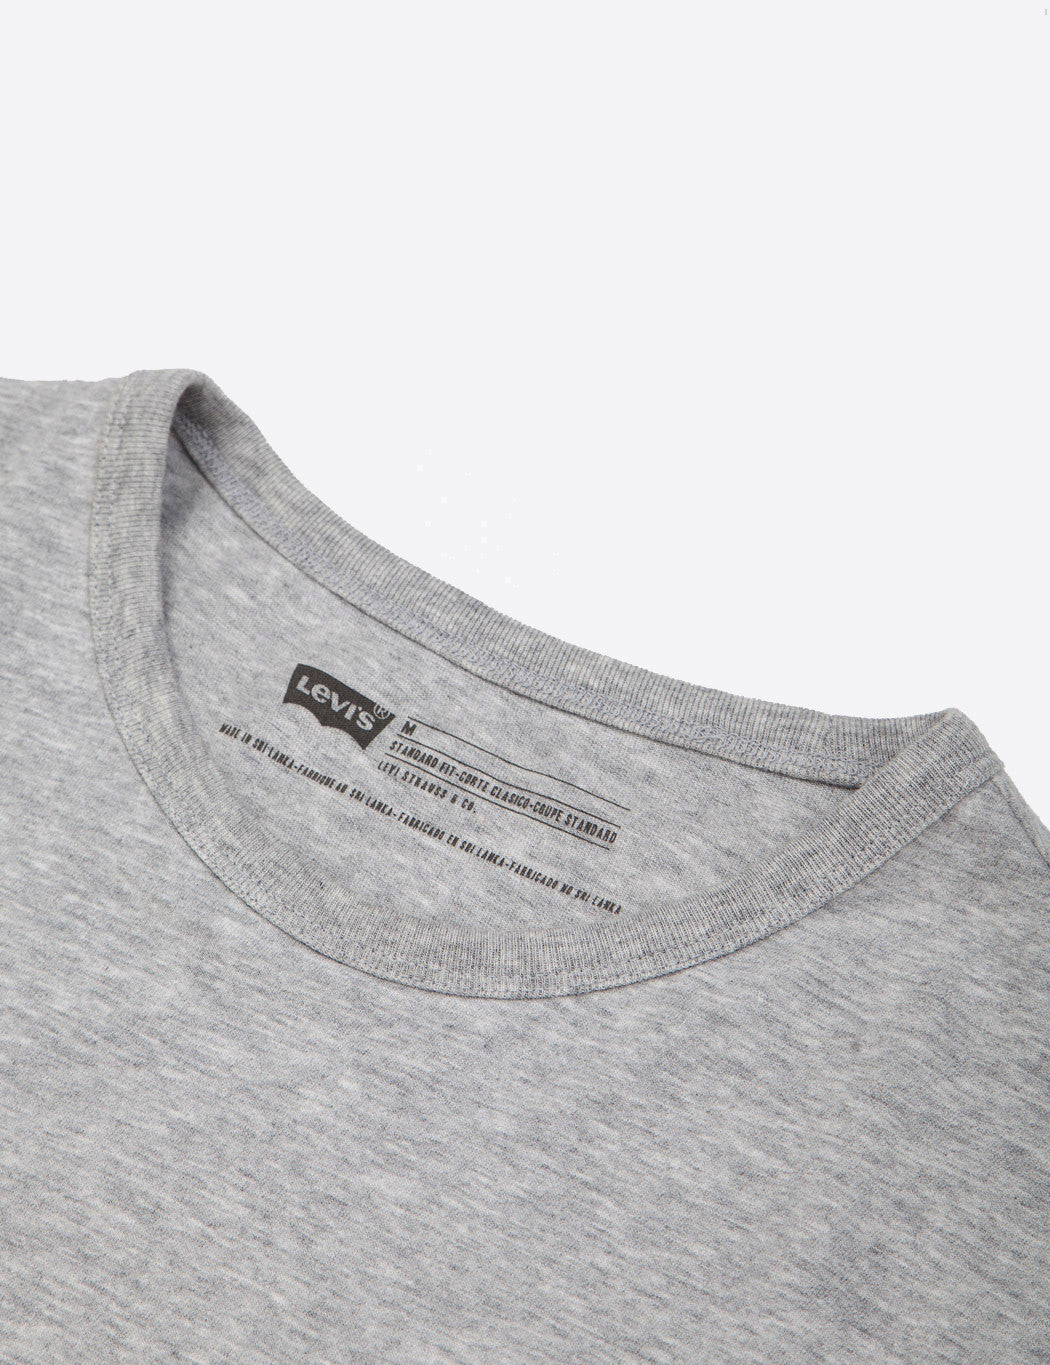 Levis Sunset Pocket T-Shirt - Grey Heather